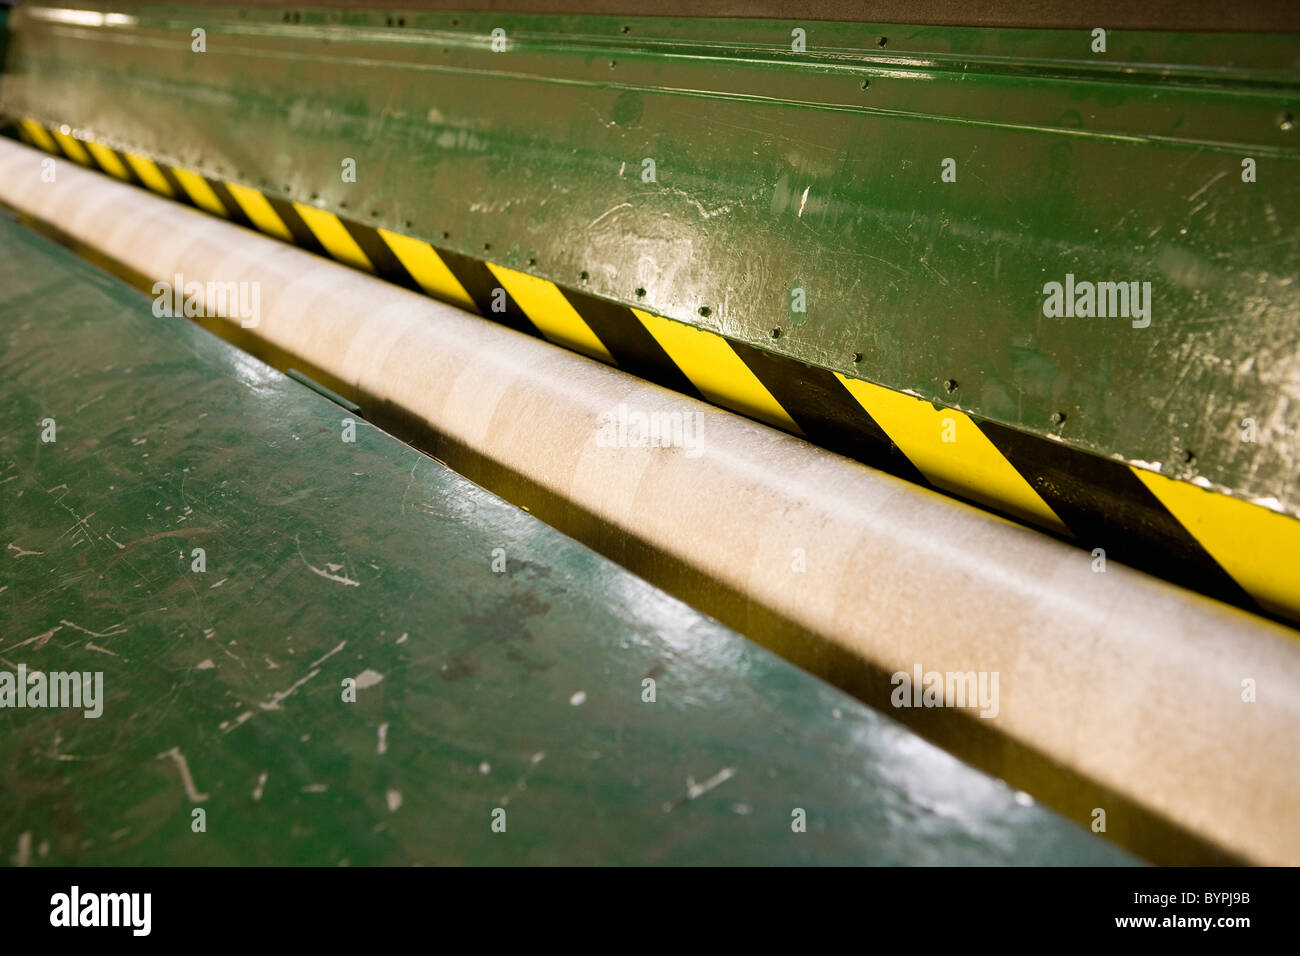 Scuffer machine and empty cardboard roll in carpet tile factory - Stock Image